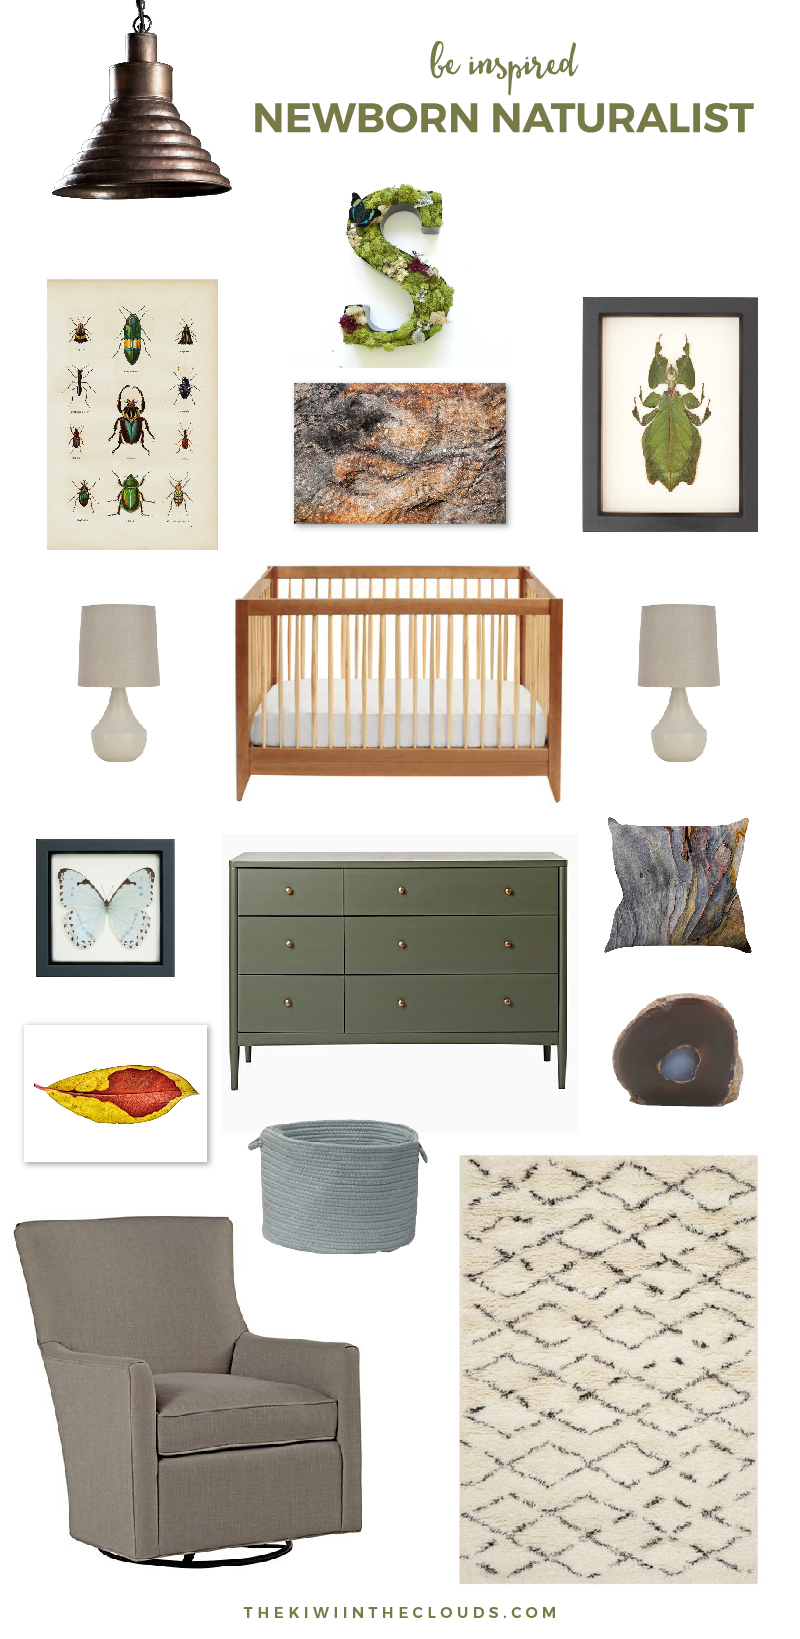 Newborn Naturalist | This nursery theme features all the natural curiosities on the Earth and pulls it all together in a calming, neutral and soothing baby room. Click through to find all the details.